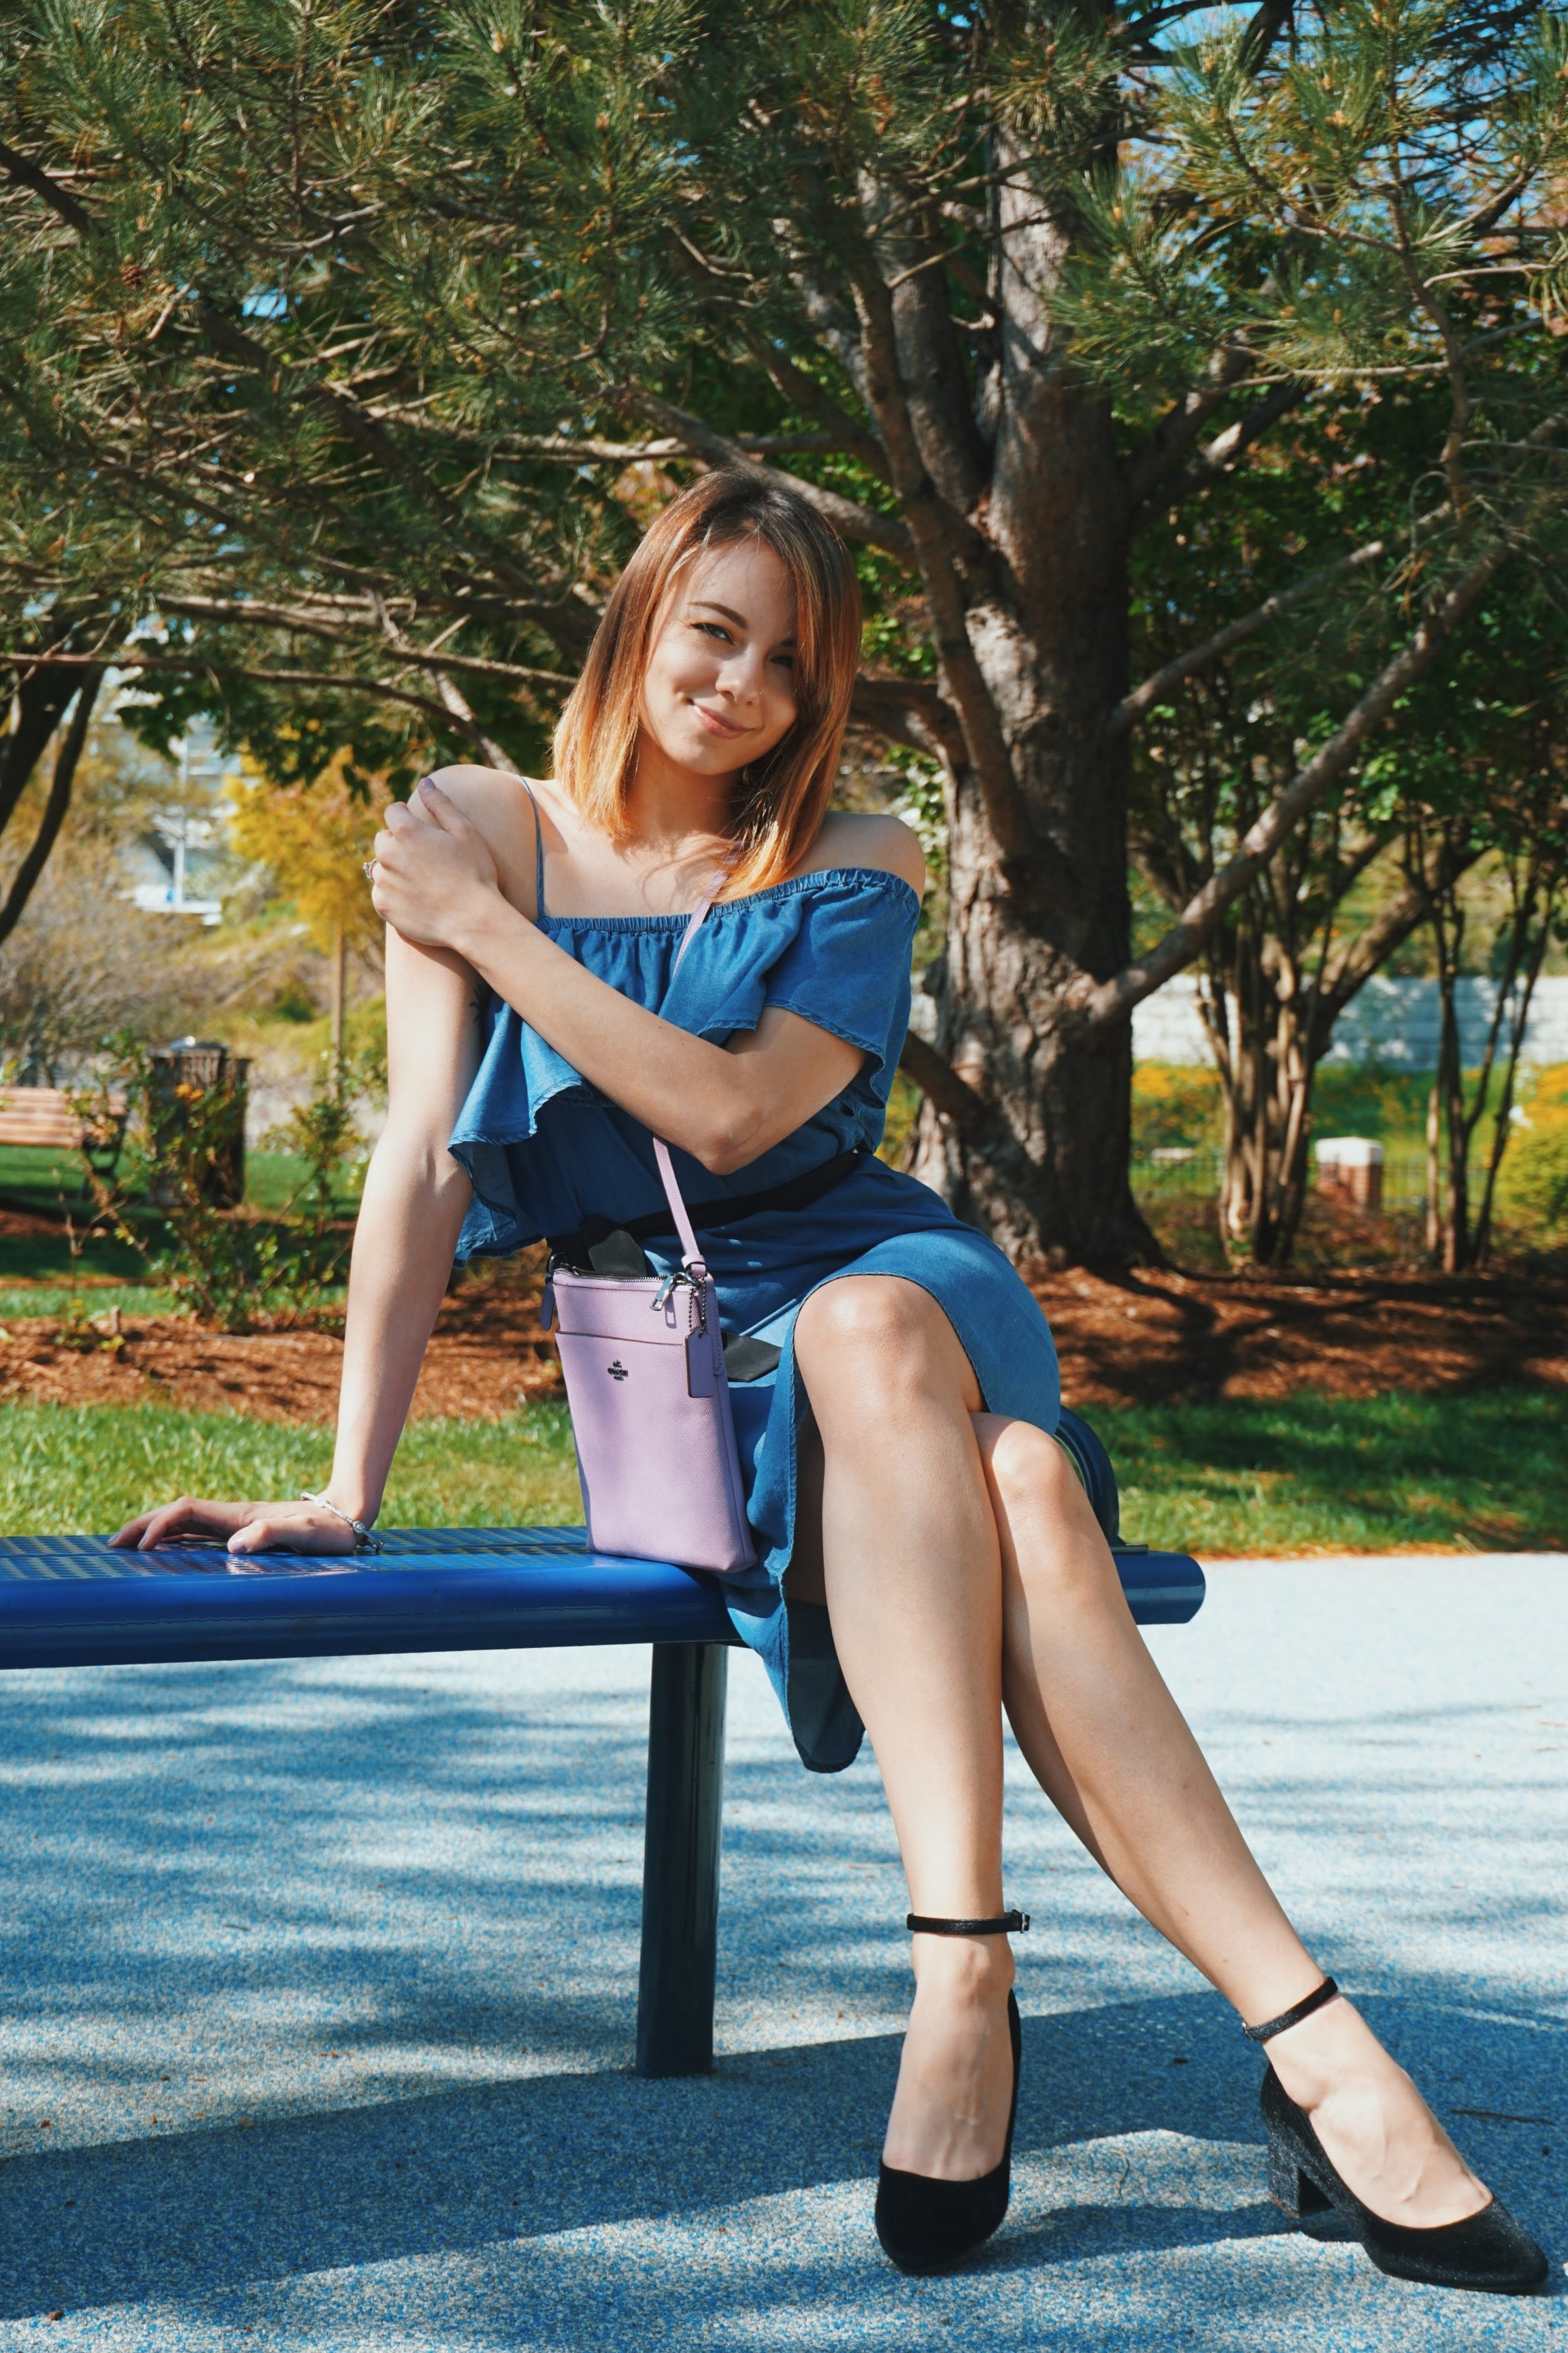 A fashion blogger sitting on a bench wearing a denim dress with ruffles on the chest area, black Unisa pumps, and a lilac Coach bag.